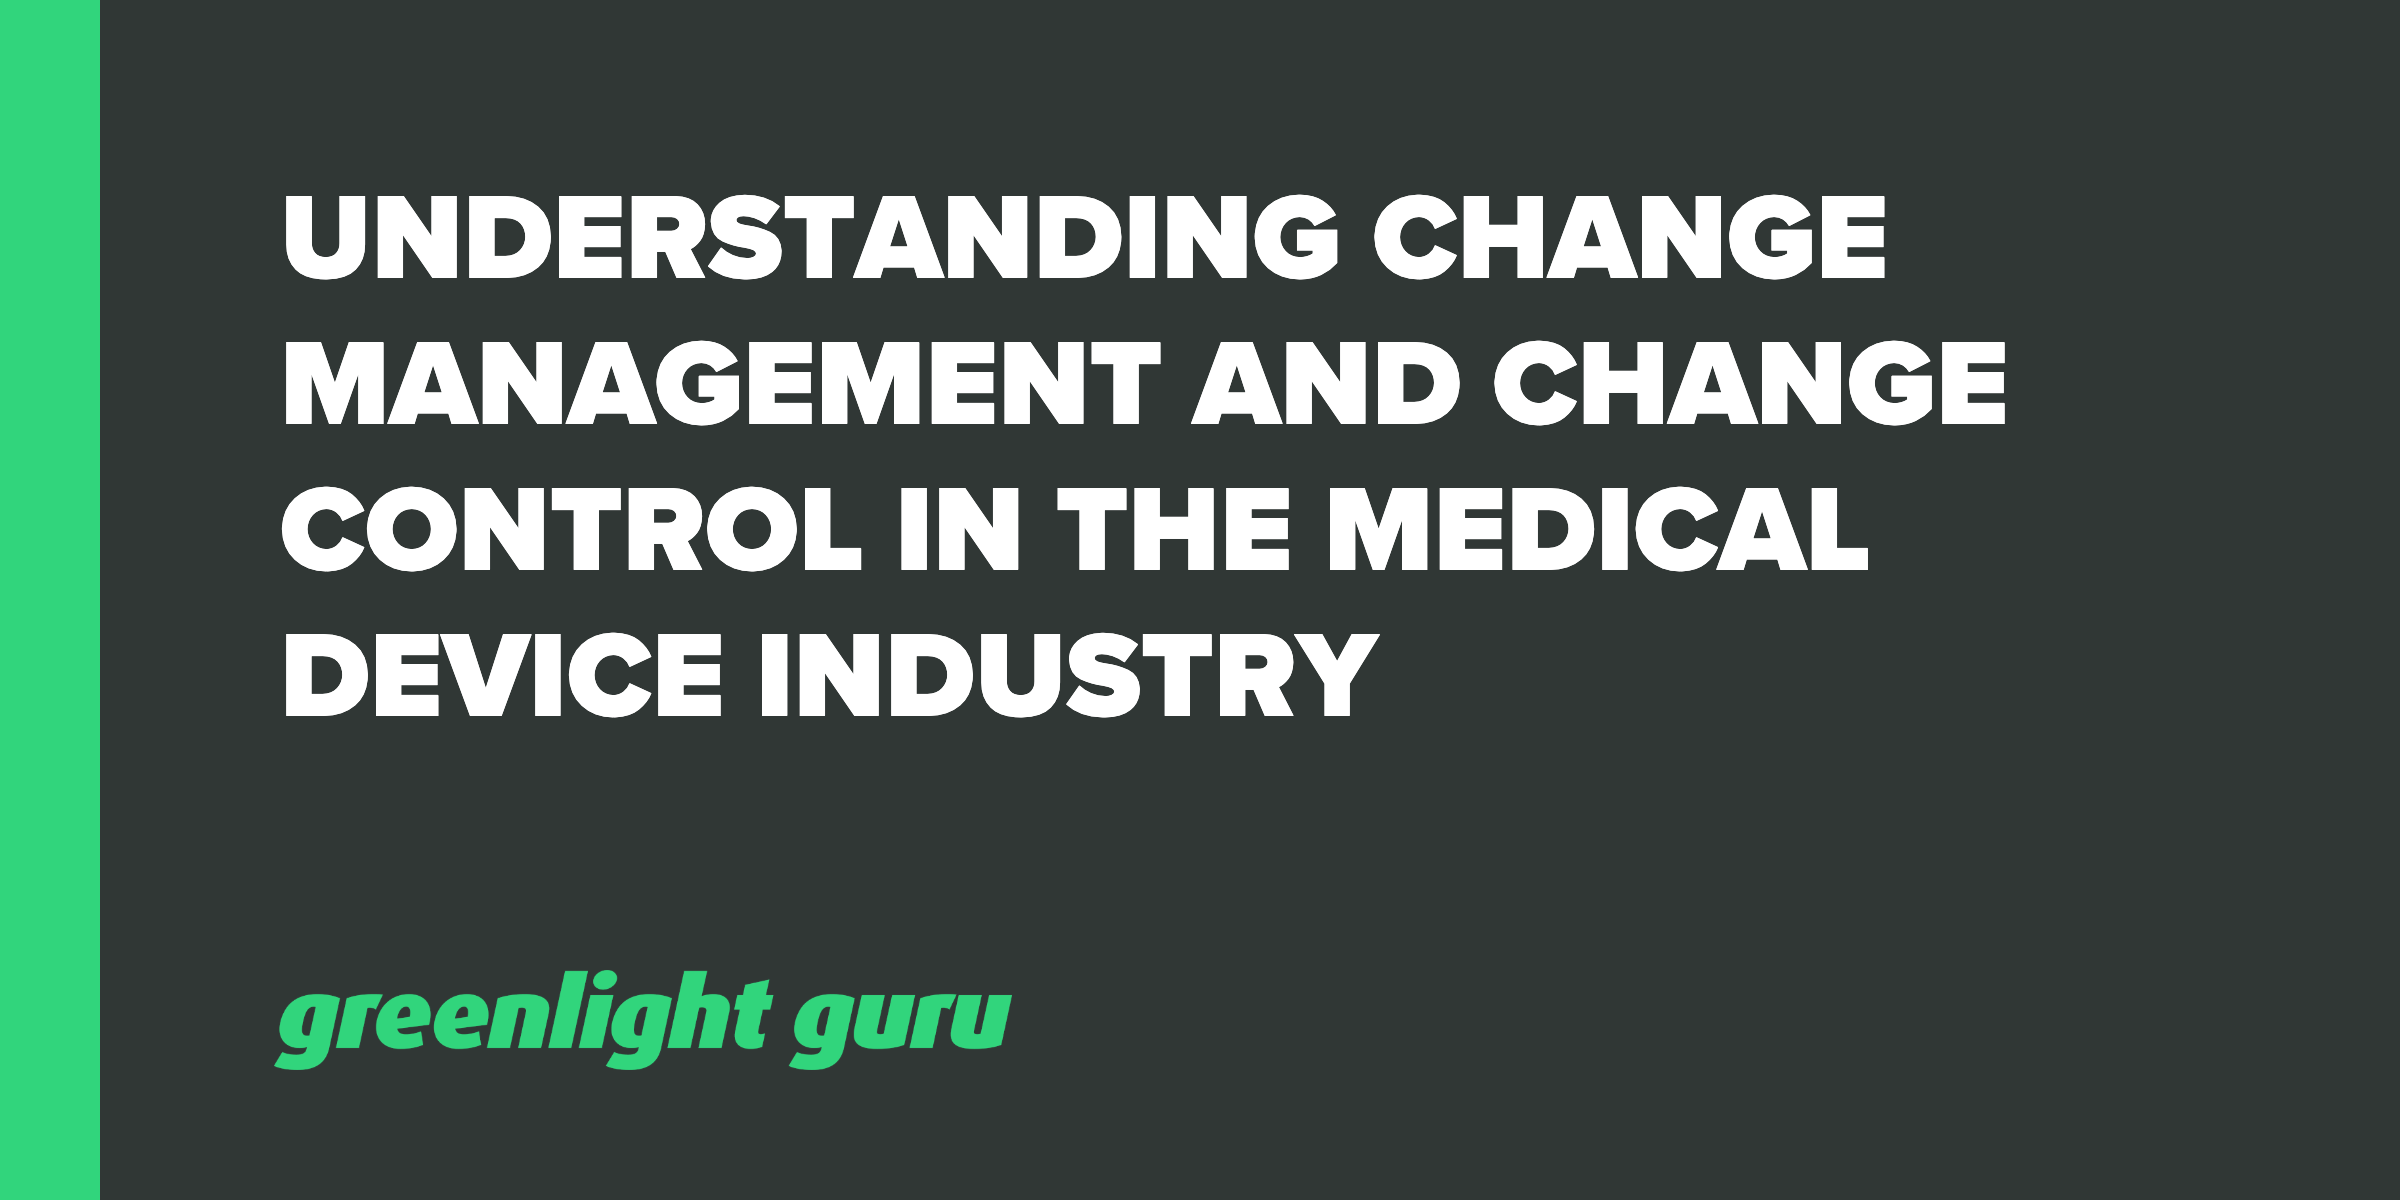 Understanding Change Management and Change Control in the Medical Device Industry